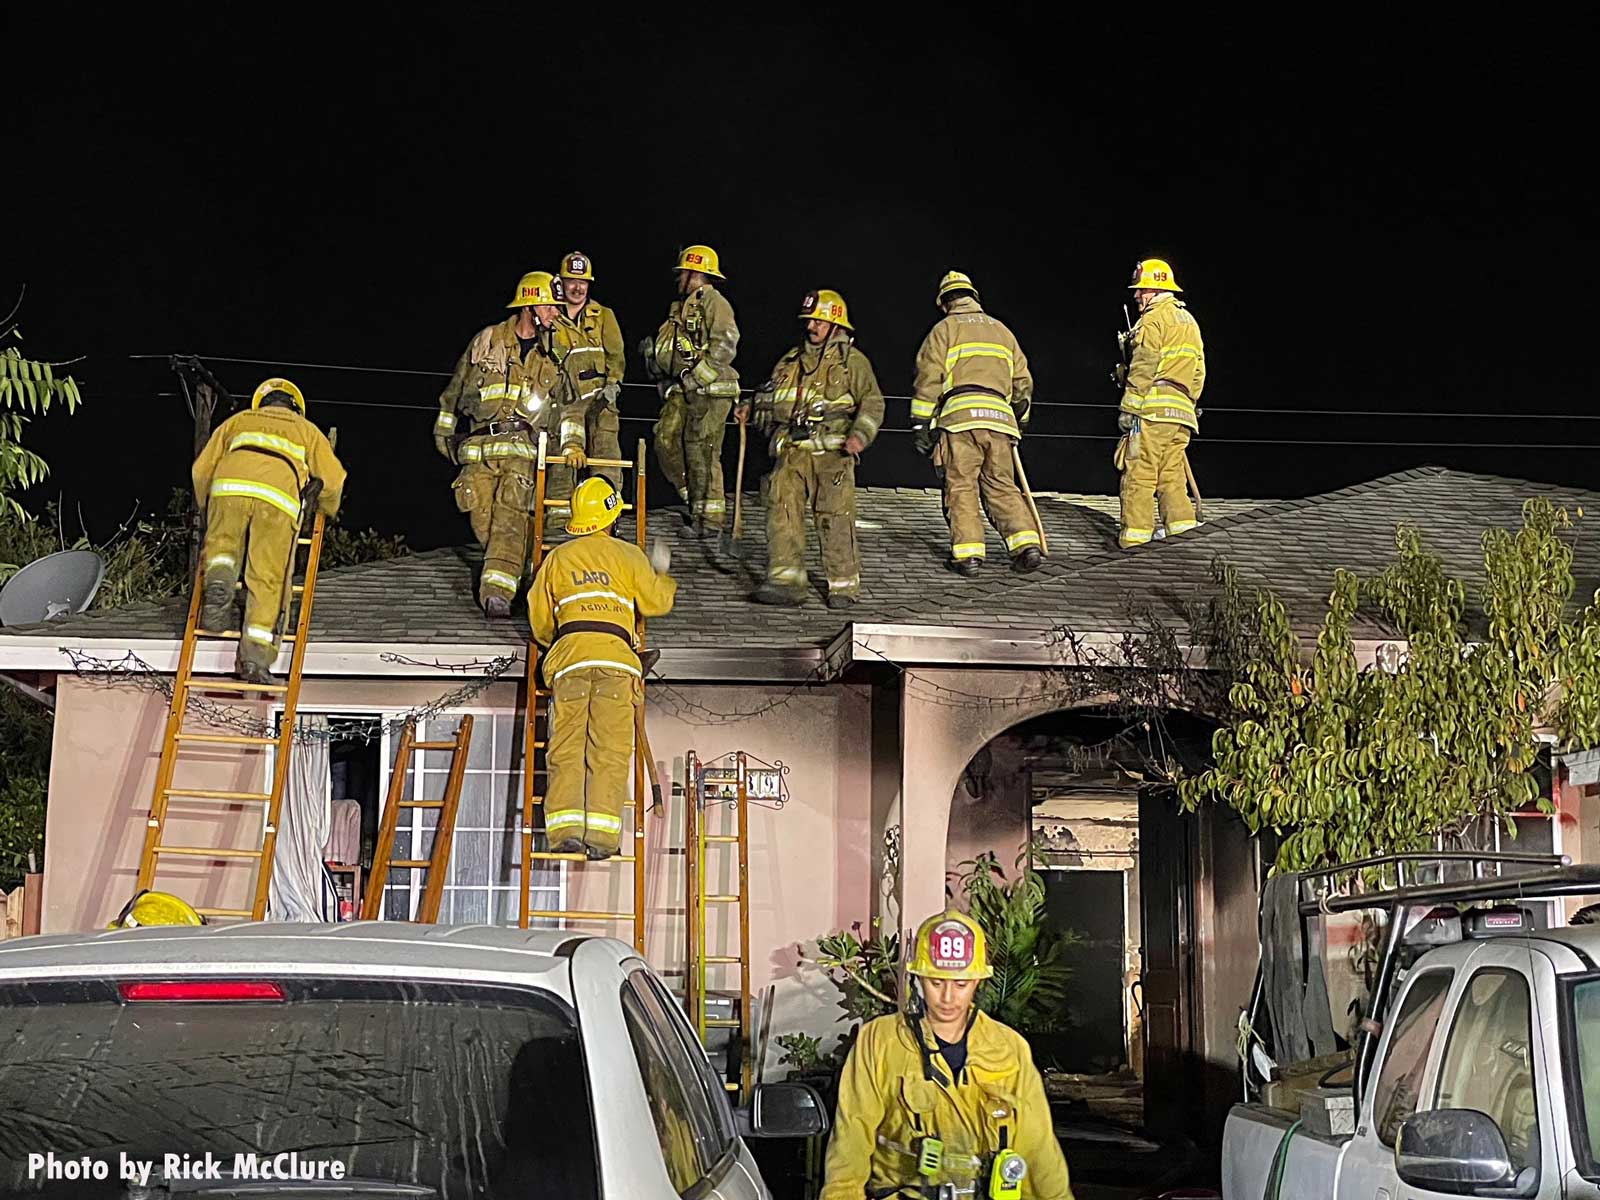 Firefighters ascend to the roof of the building with two ladders on the home